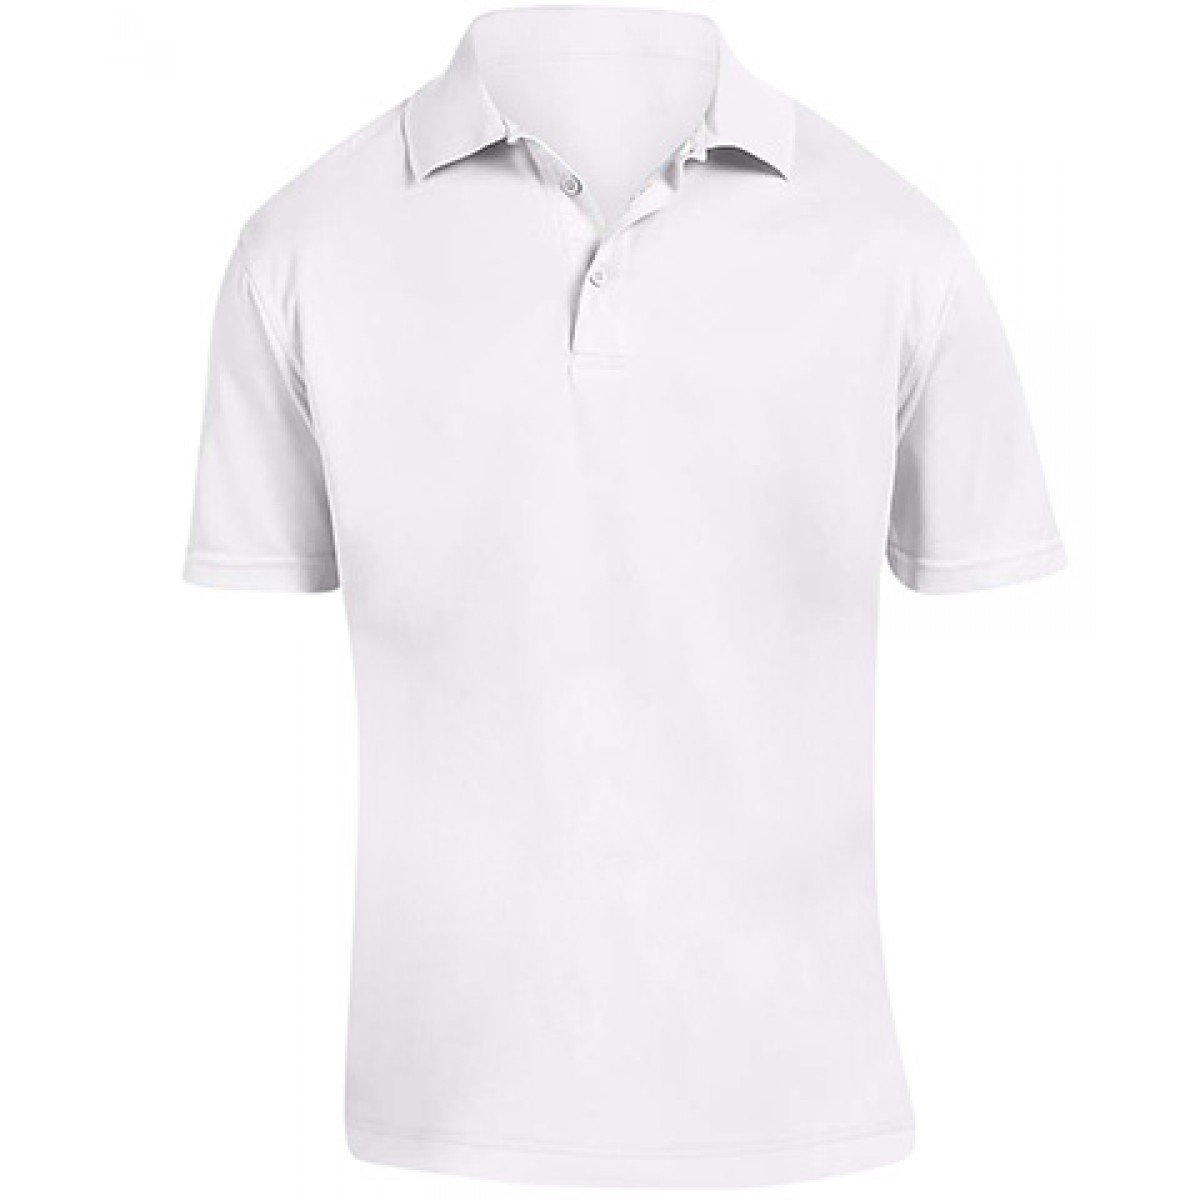 Men's 4 oz. Polytech Polo-White-XS